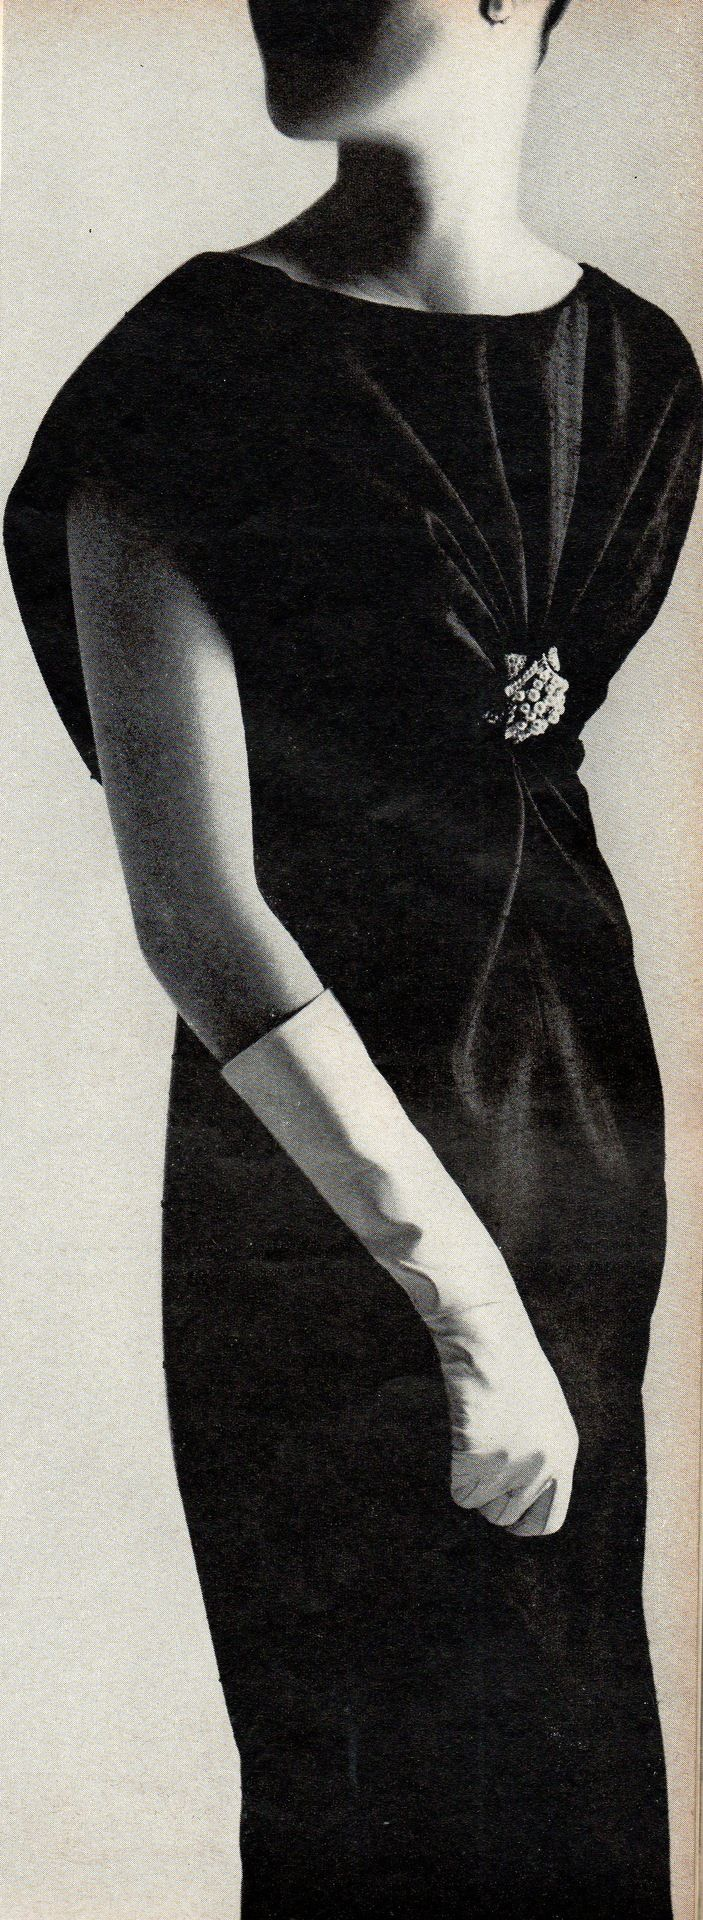 Givenchy black shantung dress, held by a jewel at the bosom drawn up over the shoulders  down on the back in two bias ends  crossed and sashed, gushed Vogue in April 1965. The dress was available at I. Magnin. Photo from Vogue.